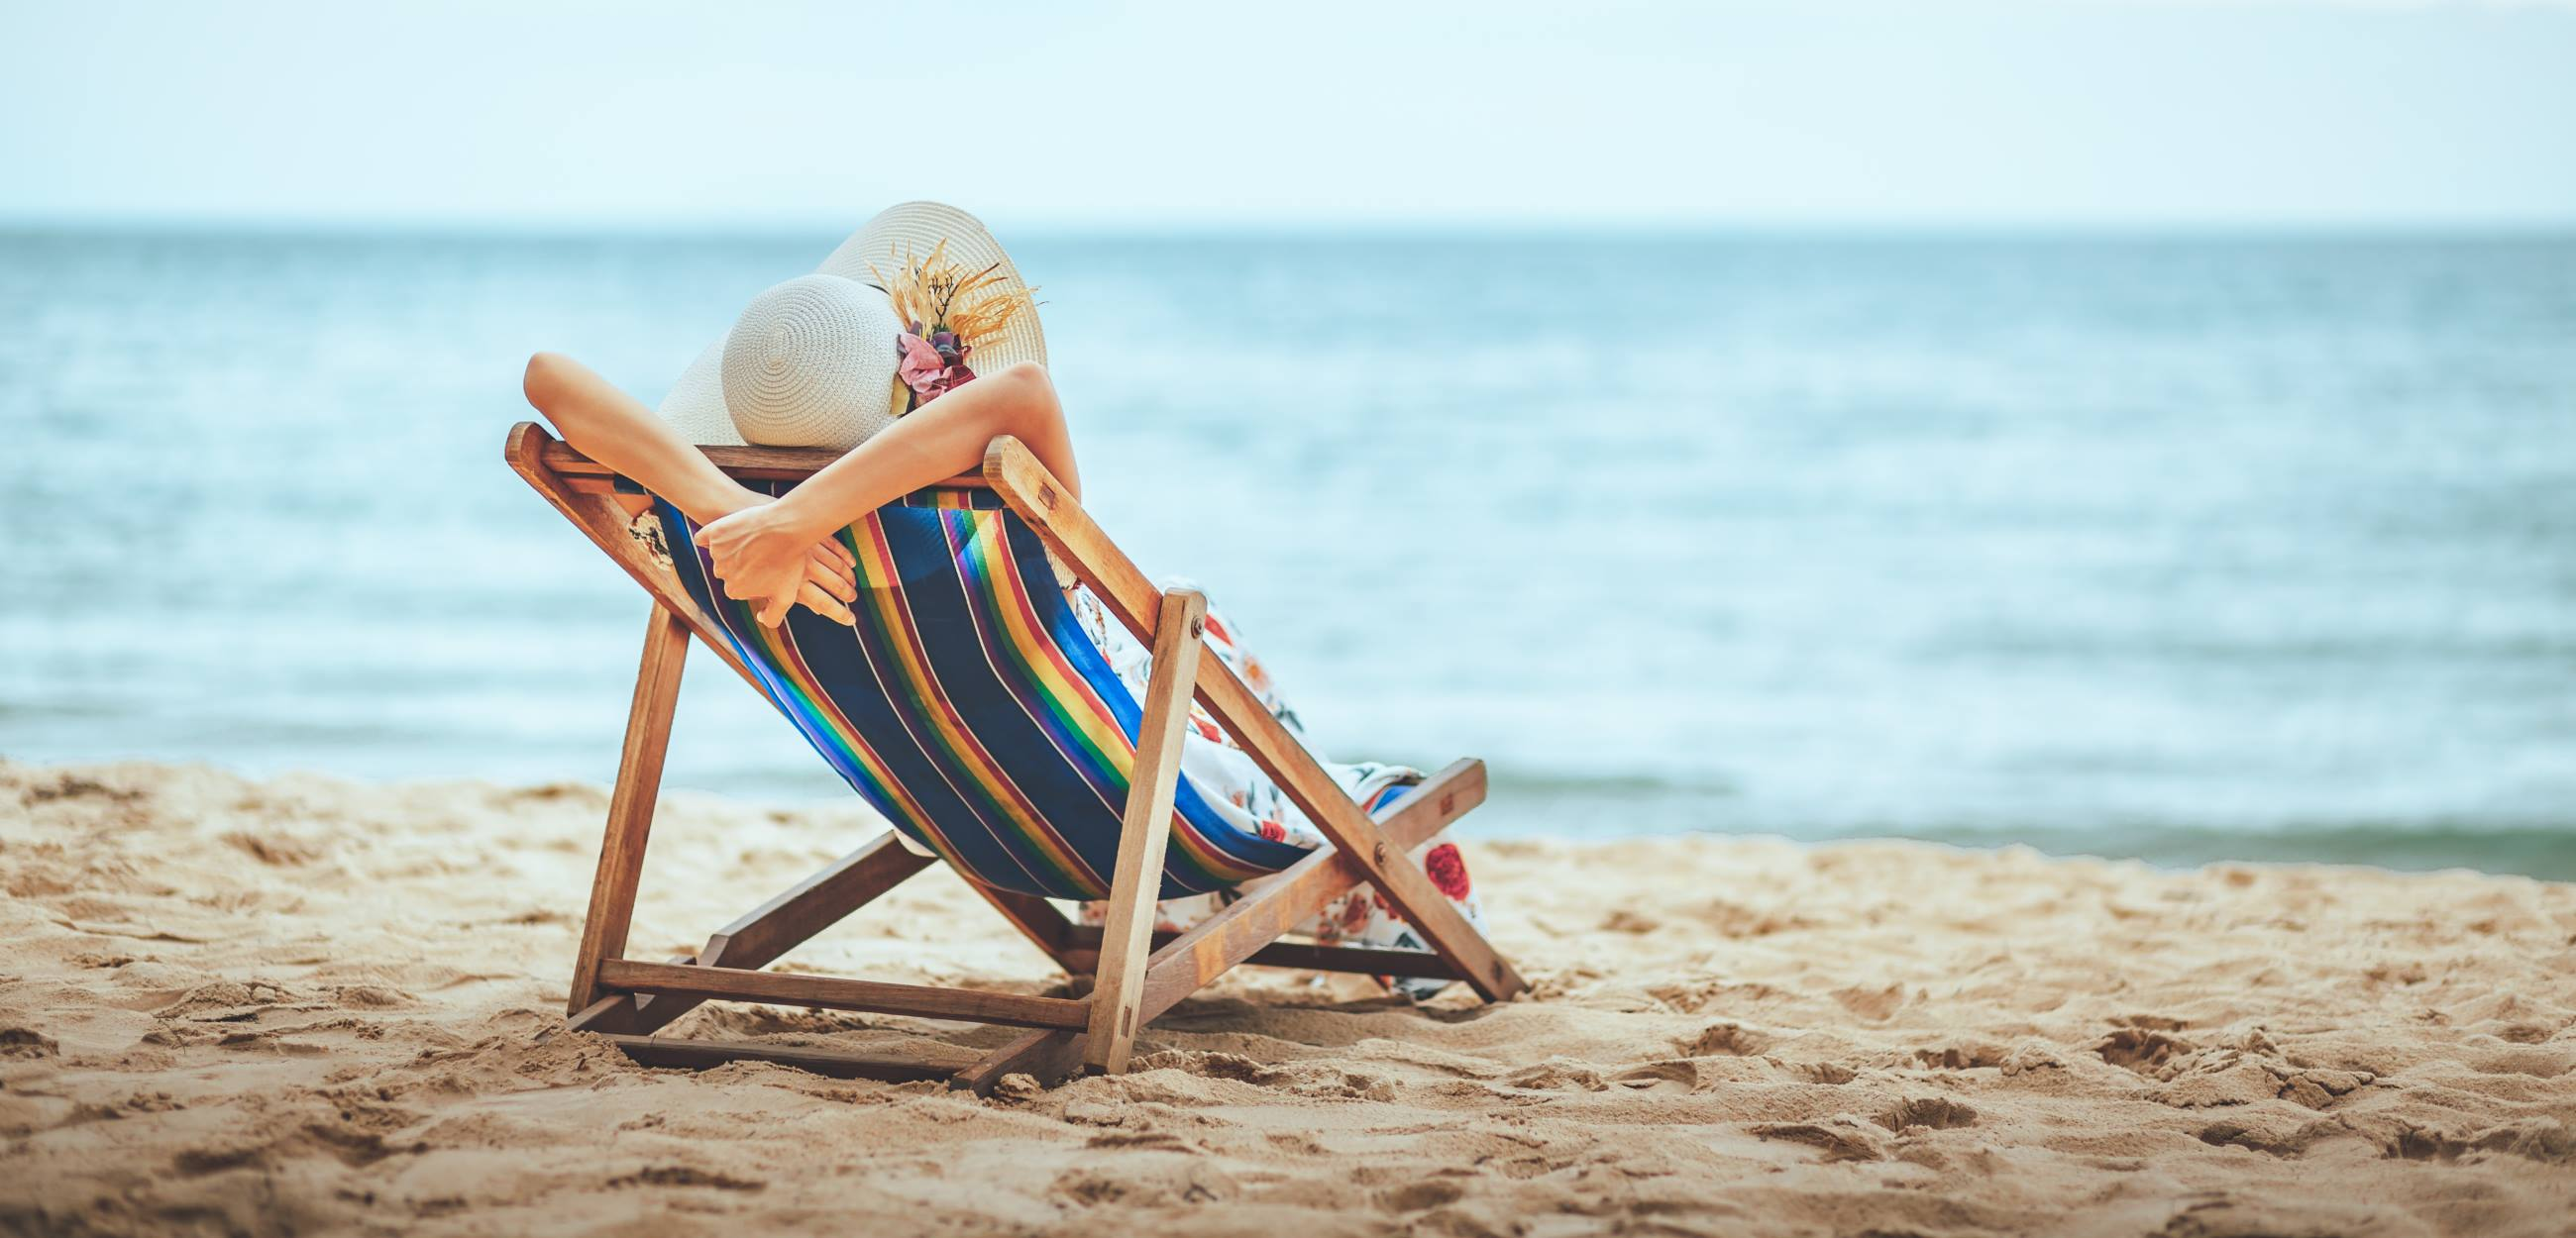 5-Safest-Places-for-Solo-Travel-lady-relaxing-on-a-chair-on-the-beach